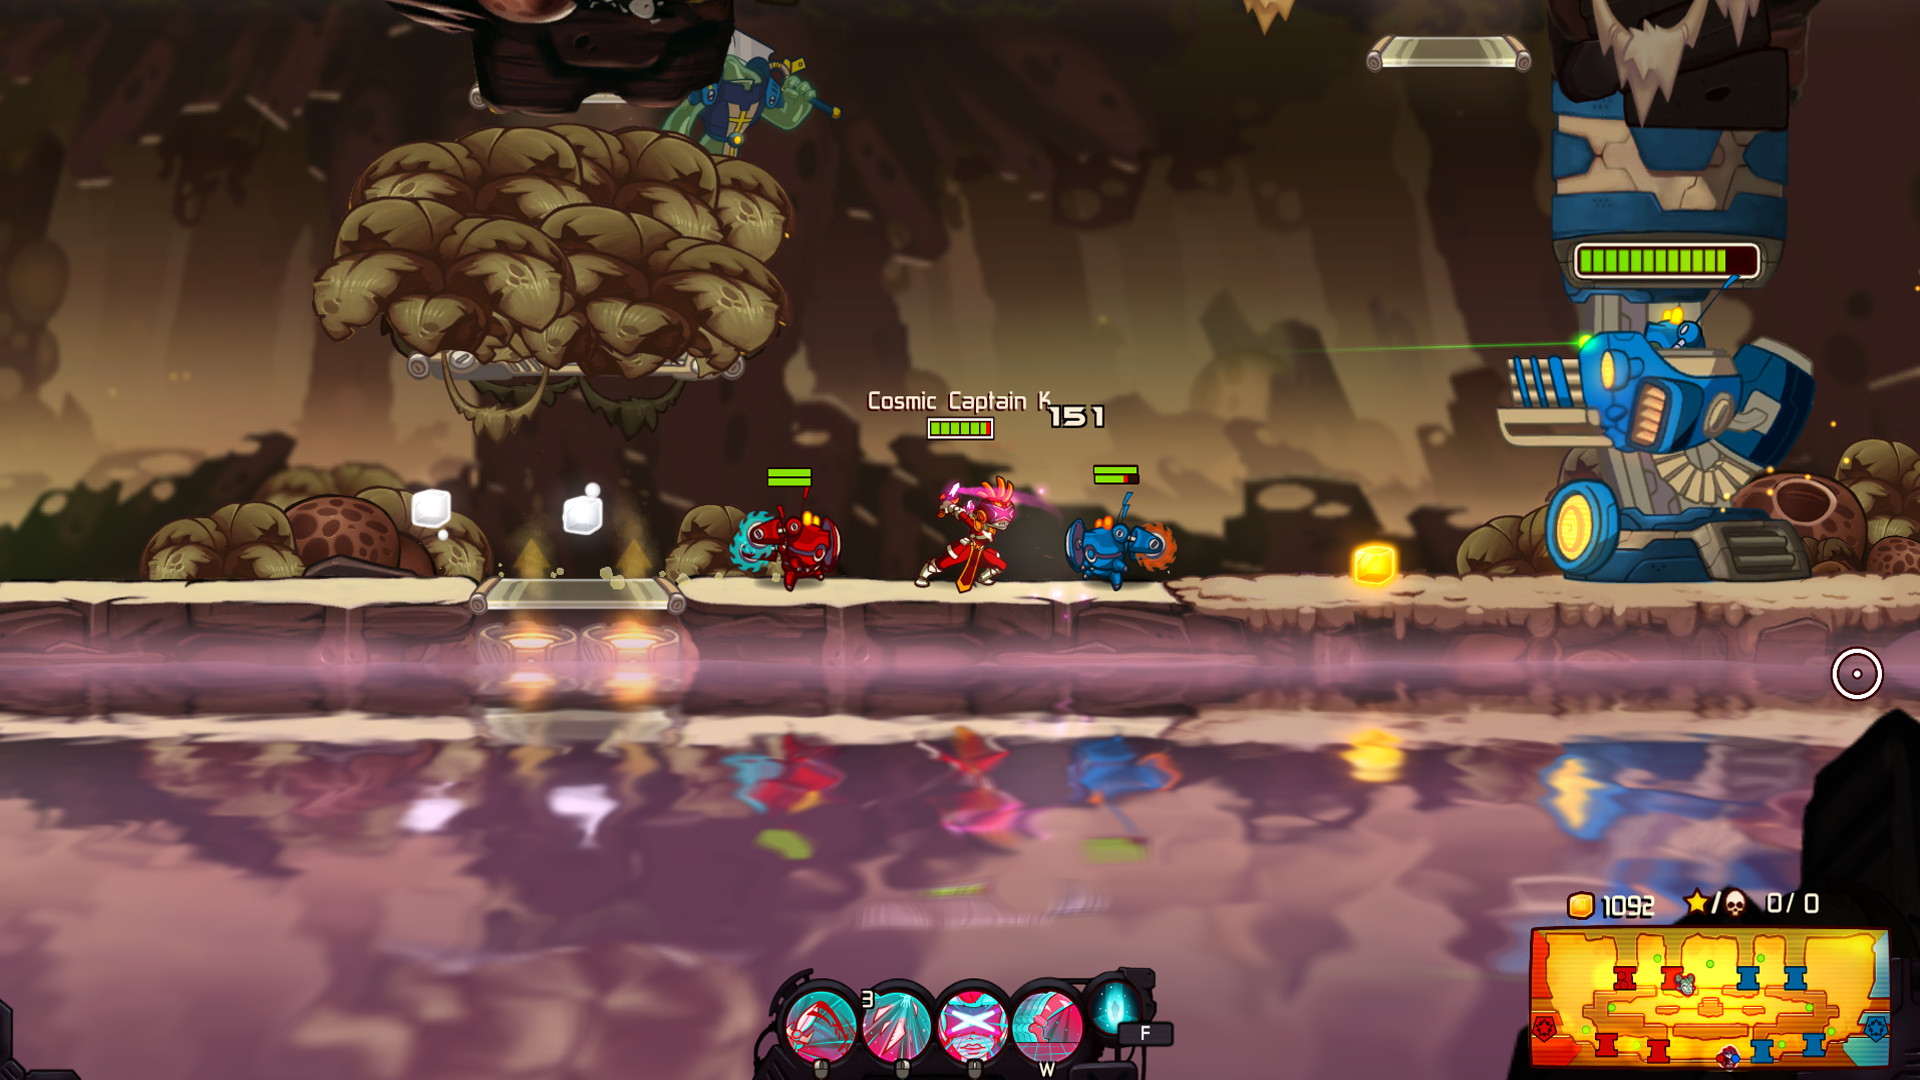 Awesomenauts - Cosmic Captain Ksenia Skin screenshot